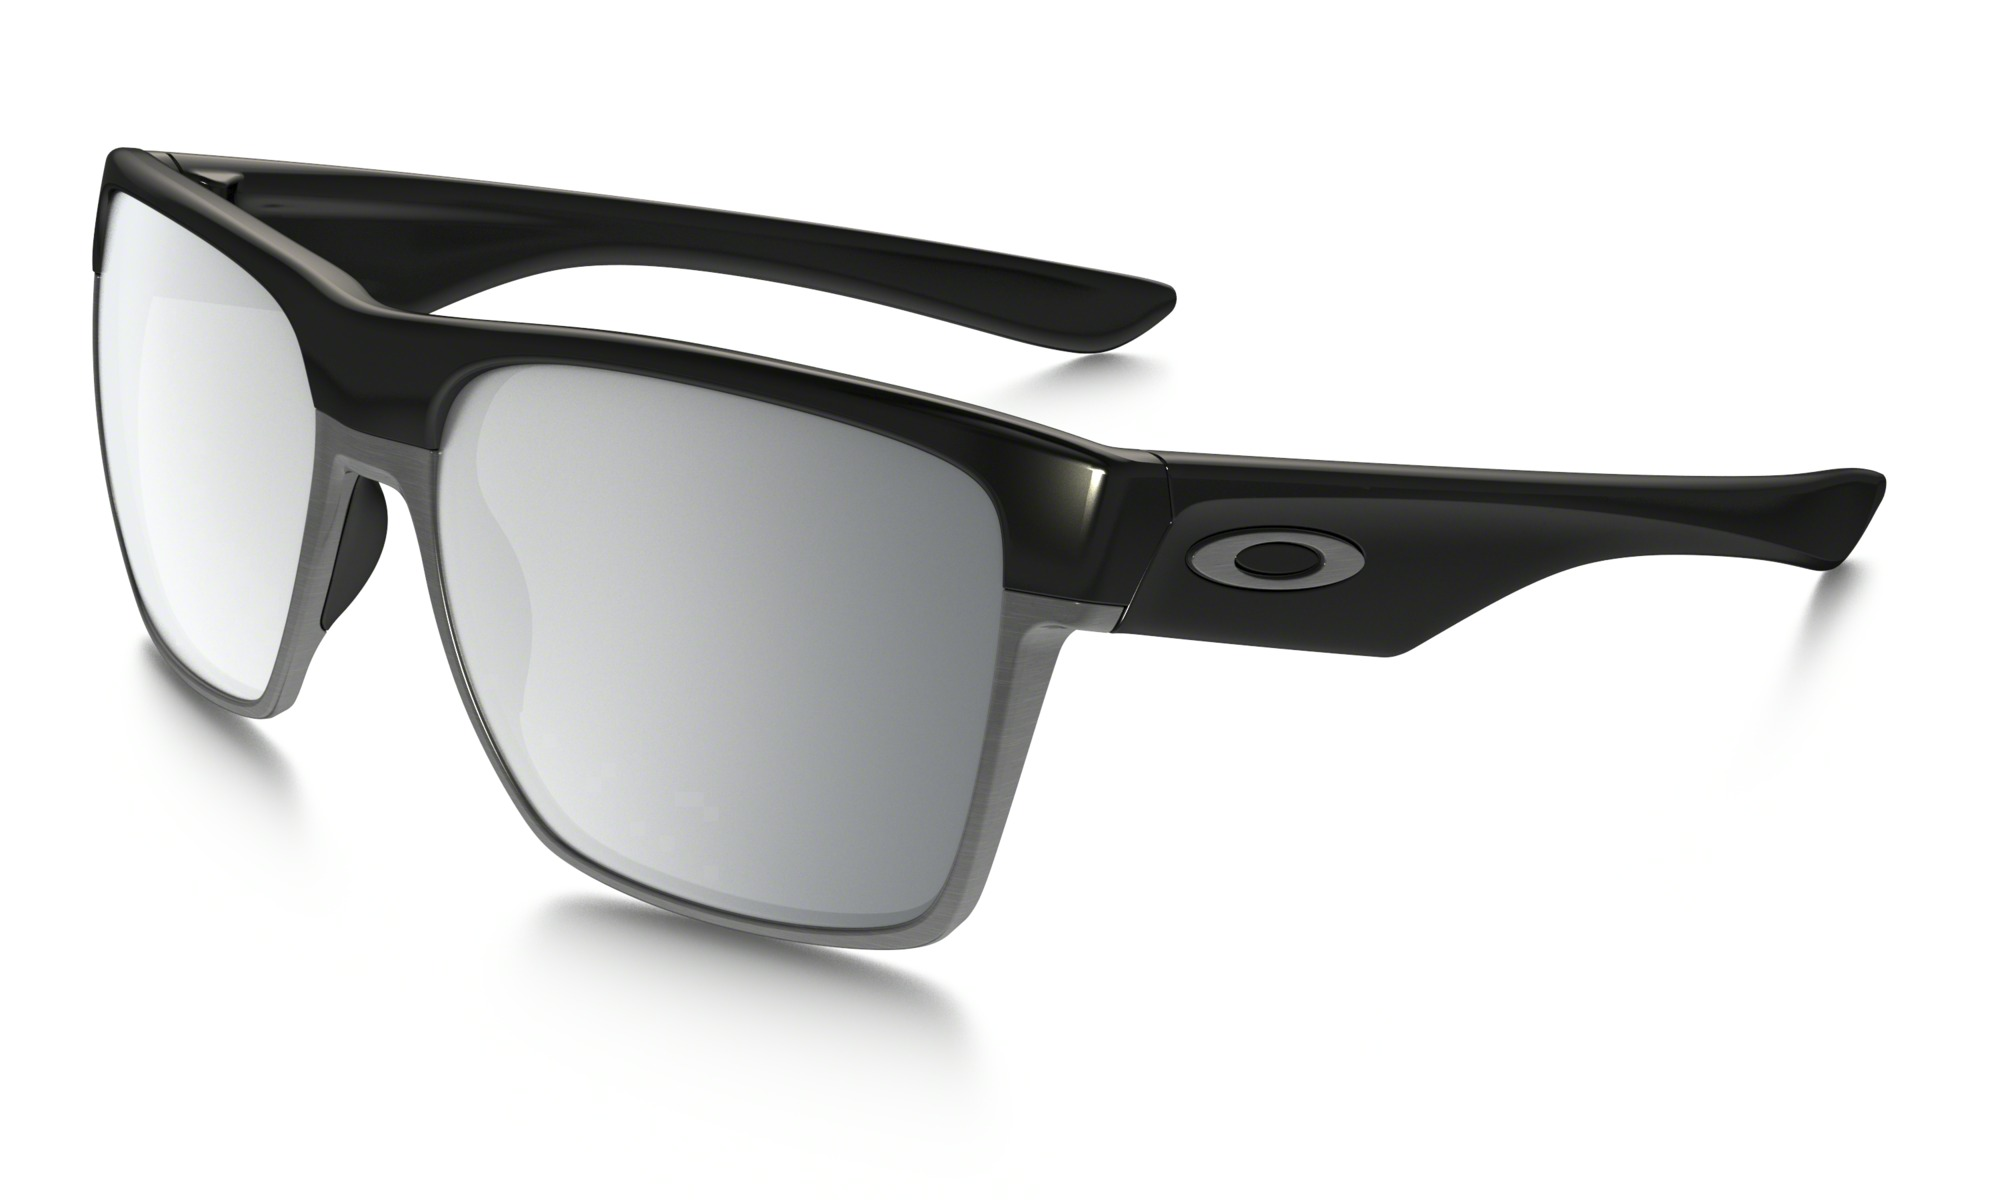 00148f4e21 The Newest Oakley Sunglasses of 2016 Hit the Market